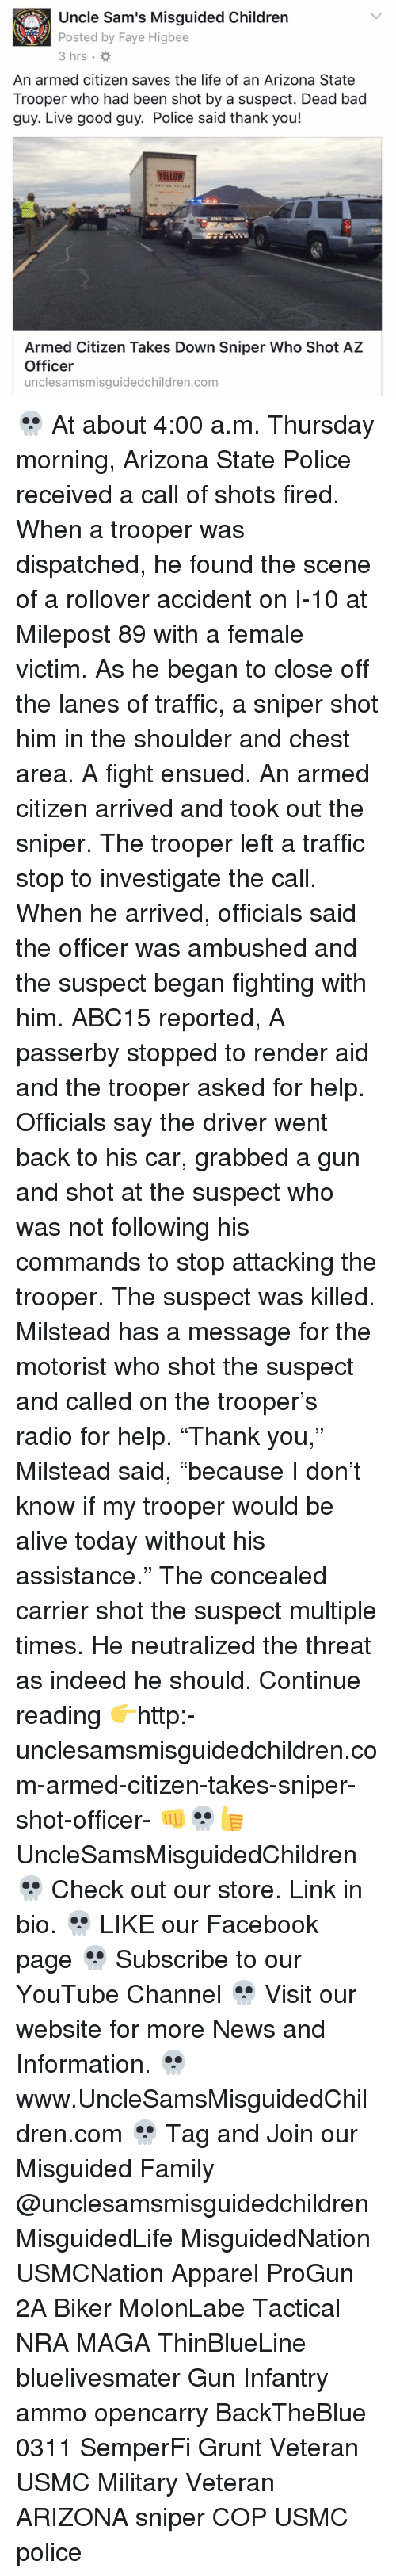 "Shot Fired: Uncle Sam's Misguided Children  Posted by Faye Higbee  3 hrs.  An armed citizen saves the life of an Arizona State  Trooper who had been shot by a suspect. Dead bad  guy. Live good guy. Police said thank you!  YELLOW  Armed Citizen Takes Down Sniper Who Shot AZ  Officer  unclesamsmisguidedchildren.com 💀 At about 4:00 a.m. Thursday morning, Arizona State Police received a call of shots fired. When a trooper was dispatched, he found the scene of a rollover accident on I-10 at Milepost 89 with a female victim. As he began to close off the lanes of traffic, a sniper shot him in the shoulder and chest area. A fight ensued. An armed citizen arrived and took out the sniper. The trooper left a traffic stop to investigate the call. When he arrived, officials said the officer was ambushed and the suspect began fighting with him. ABC15 reported, A passerby stopped to render aid and the trooper asked for help. Officials say the driver went back to his car, grabbed a gun and shot at the suspect who was not following his commands to stop attacking the trooper. The suspect was killed. Milstead has a message for the motorist who shot the suspect and called on the trooper's radio for help. ""Thank you,"" Milstead said, ""because I don't know if my trooper would be alive today without his assistance."" The concealed carrier shot the suspect multiple times. He neutralized the threat as indeed he should. Continue reading 👉http:-unclesamsmisguidedchildren.com-armed-citizen-takes-sniper-shot-officer- 👊💀👍 UncleSamsMisguidedChildren 💀 Check out our store. Link in bio. 💀 LIKE our Facebook page 💀 Subscribe to our YouTube Channel 💀 Visit our website for more News and Information. 💀 www.UncleSamsMisguidedChildren.com 💀 Tag and Join our Misguided Family @unclesamsmisguidedchildren MisguidedLife MisguidedNation USMCNation Apparel ProGun 2A Biker MolonLabe Tactical NRA MAGA ThinBlueLine bluelivesmater Gun Infantry ammo opencarry BackTheBlue 0311 SemperFi Grunt Veteran USMC Military Veteran ARIZONA sniper COP USMC police"